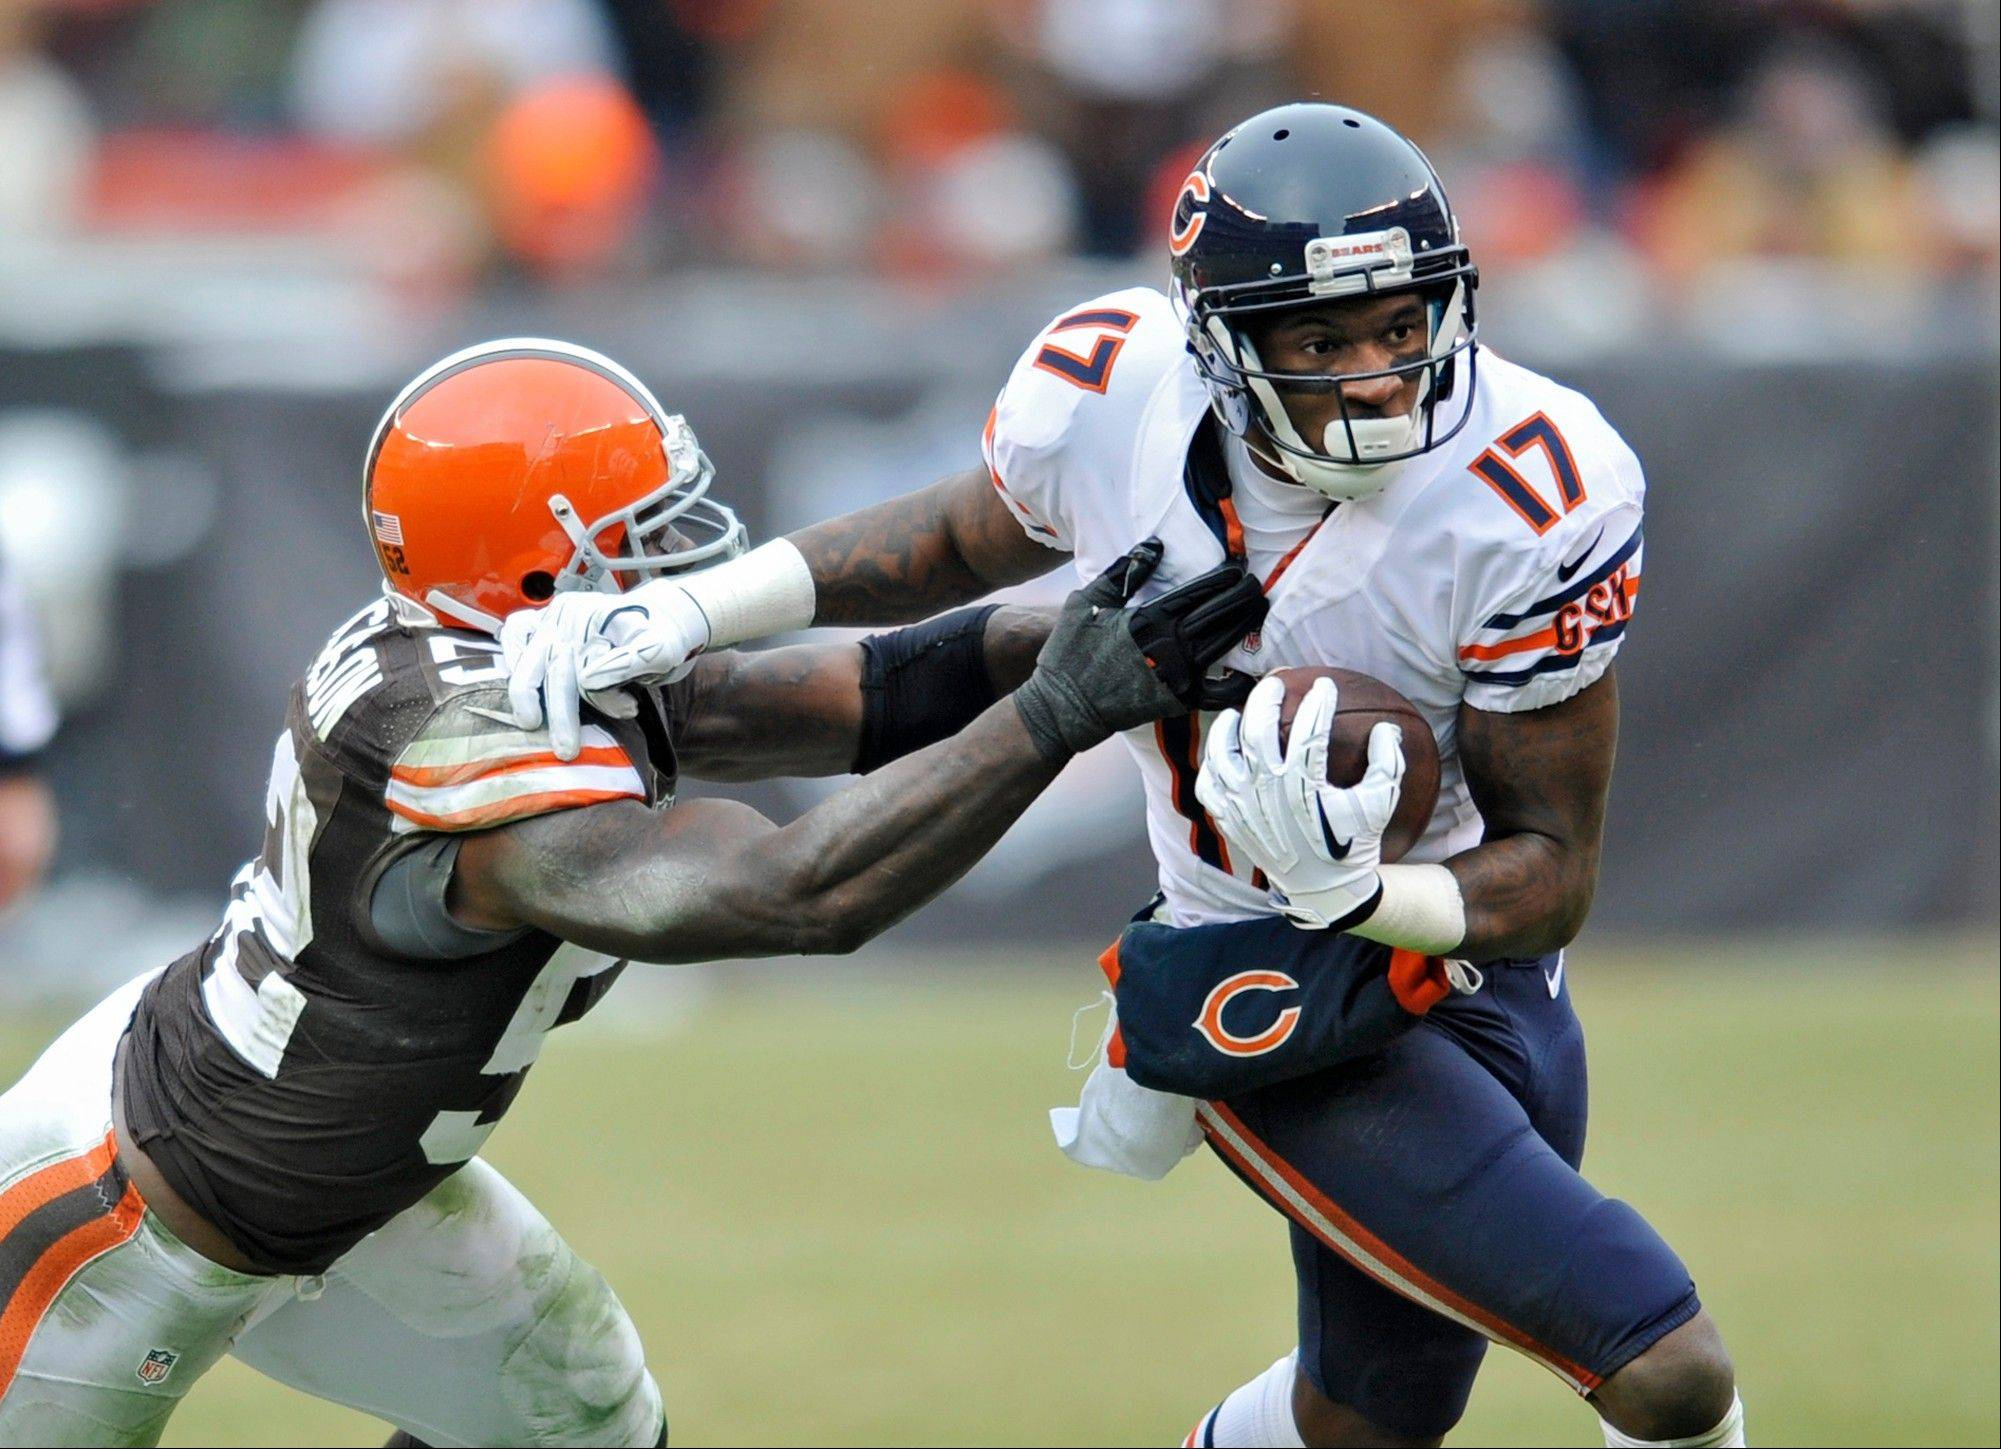 Chicago Bears wide receiver Alshon Jeffery (17) fights off Cleveland Browns inside linebacker D'Qwell Jackson after a catch in the second quarter.